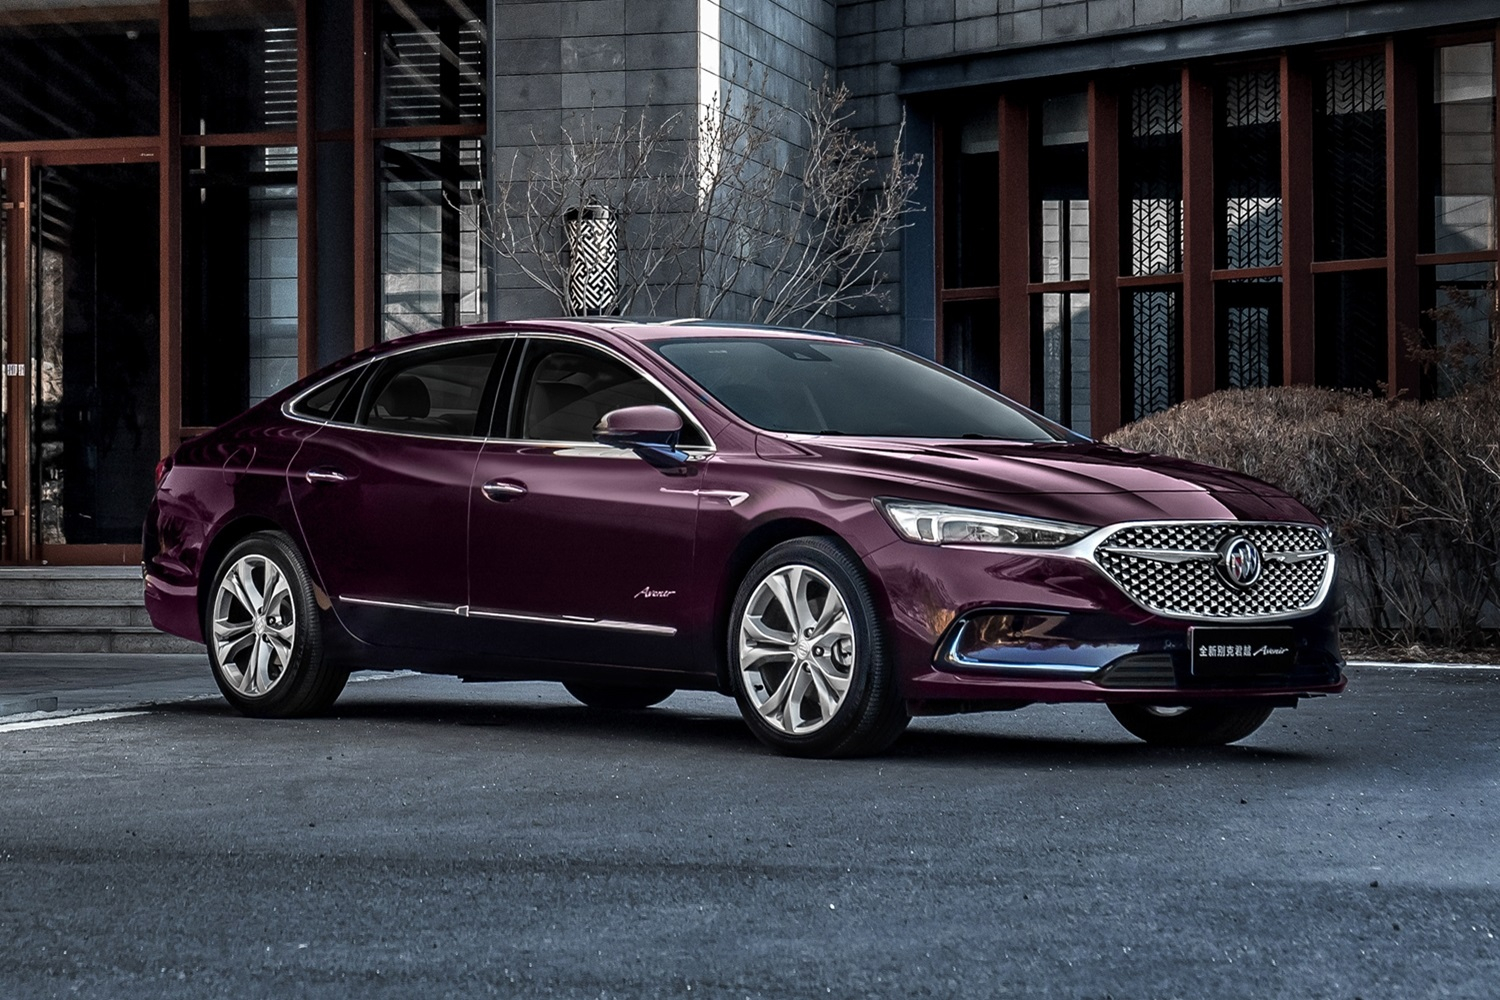 2021 Buick Lacrosse Gets More Refined Than Ever | Gm Authority 2021 Buick Regal Production, Pictures, Price